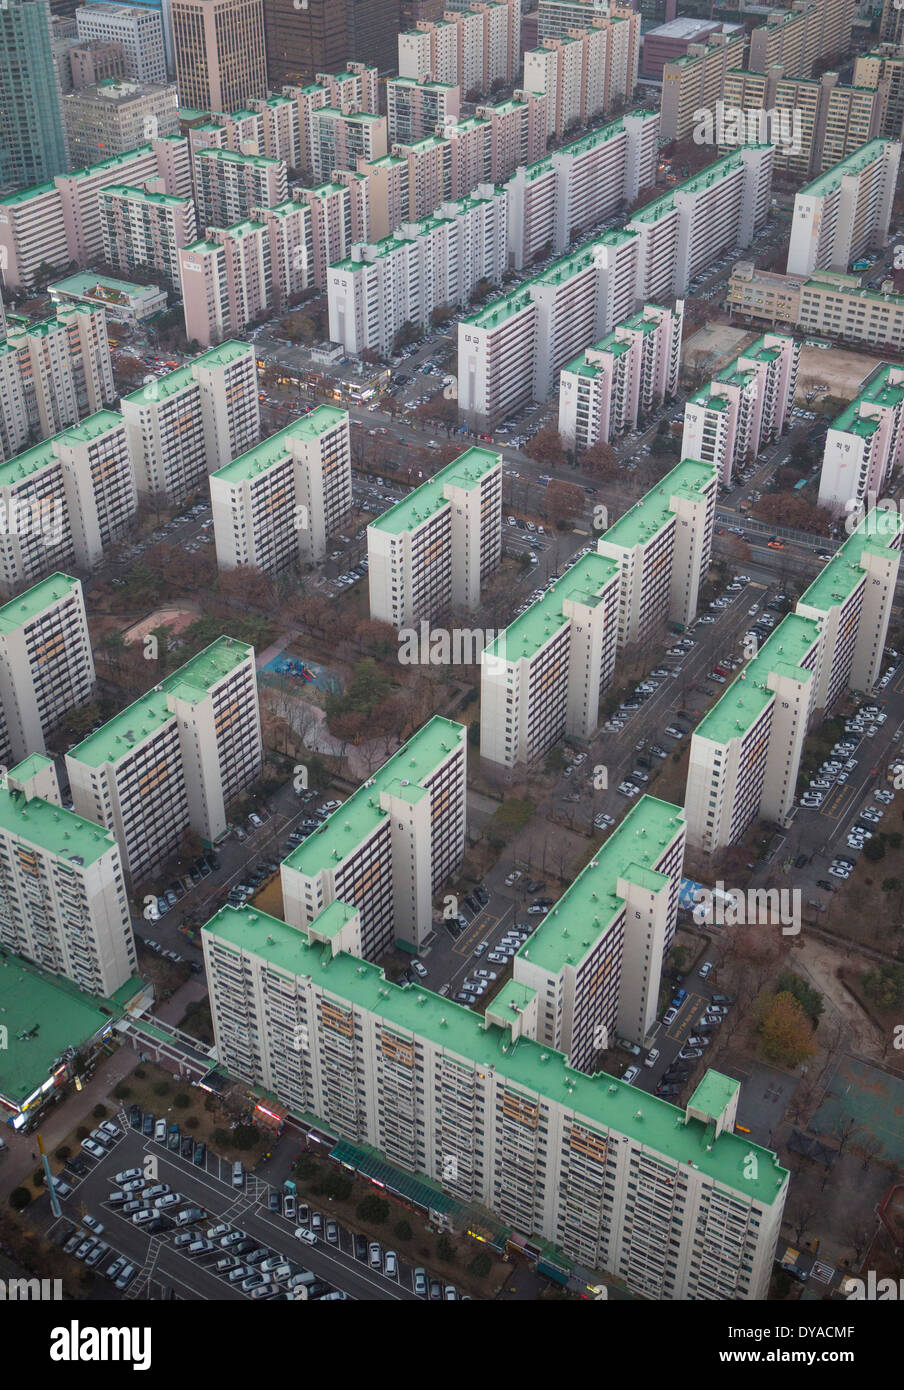 Korea Asia Seoul Yeouido aerial apartments architecture blocks city colourful geometry order panorama planning roofs sunset - Stock Image